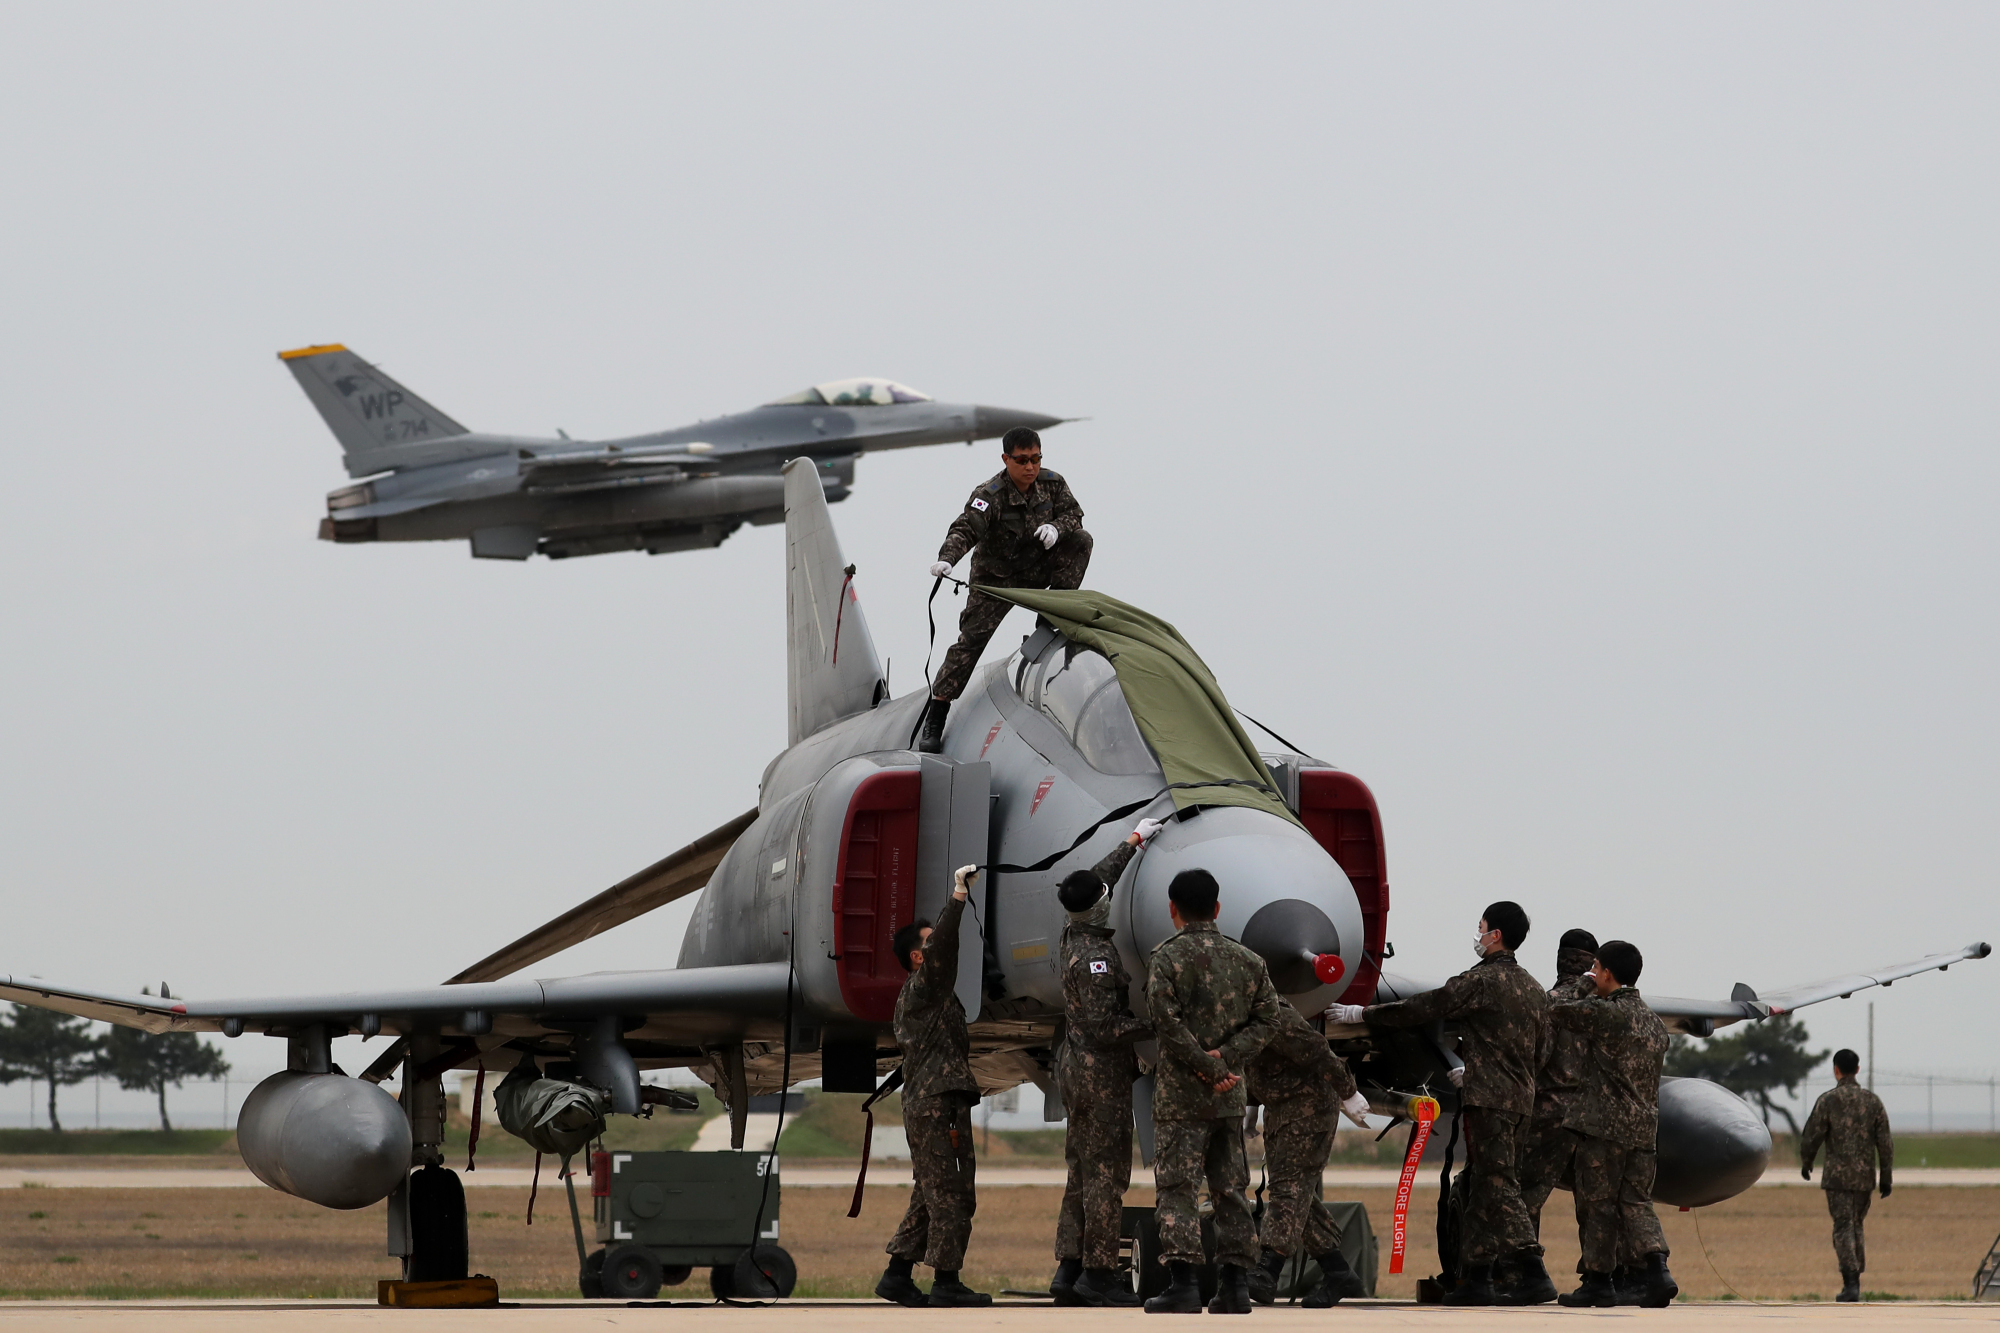 The South Korean and U.S. Air Forces conduct a bilateral training exercise in Gunsan, South Korea, in April 2017. | BLOOMBERG